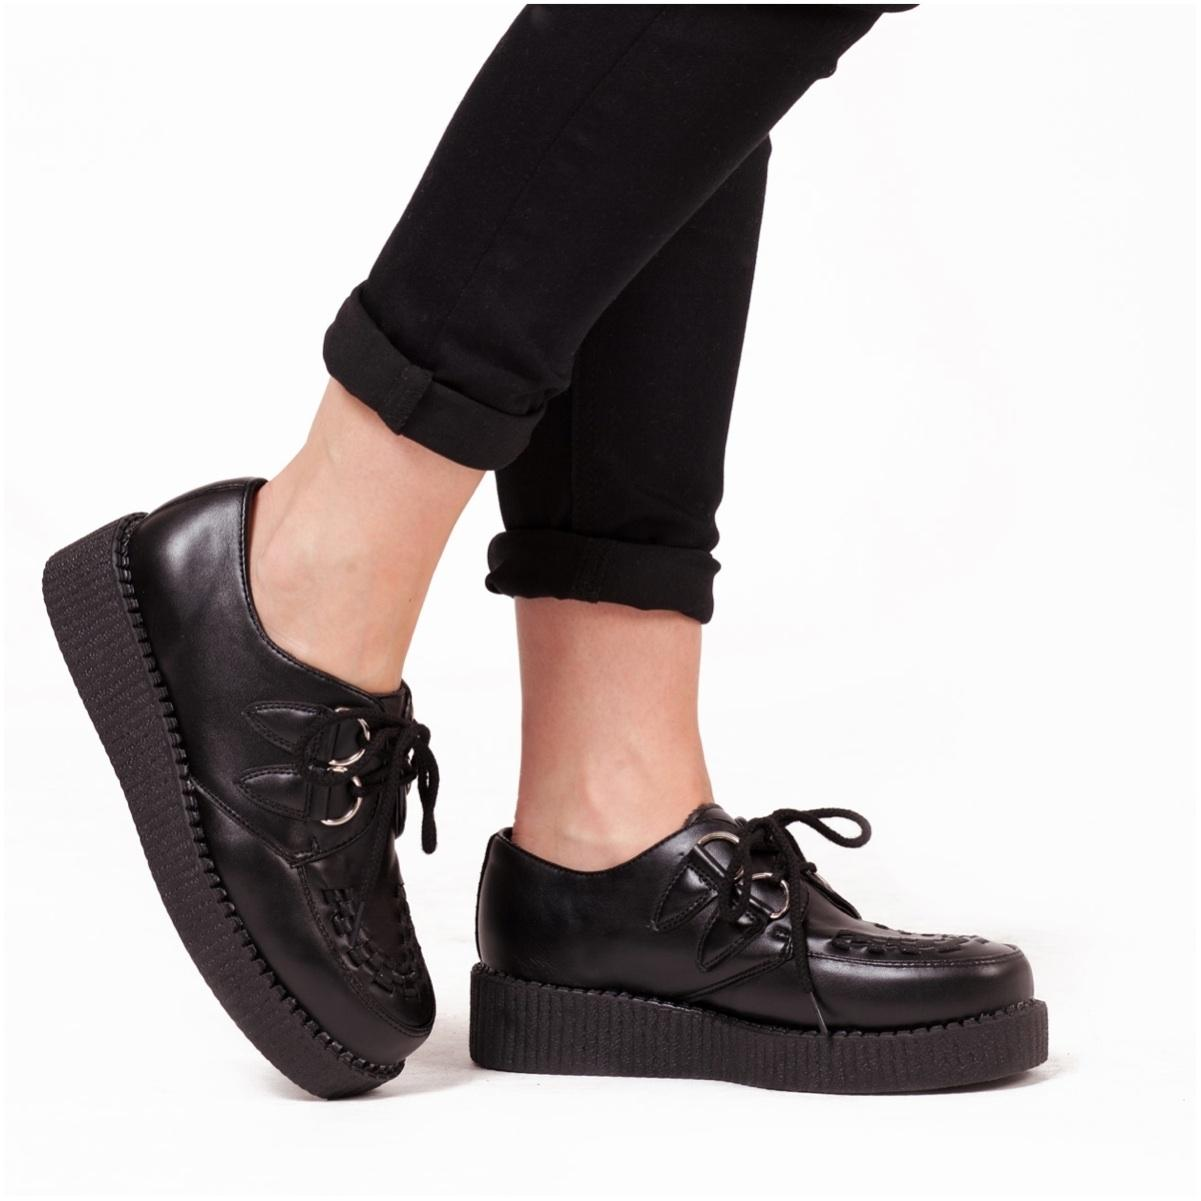 Black Faux Leather Creepers £26 💜 http://t.co/7MrACD4gkj #creepers http://t.co/2eUmma2Gso